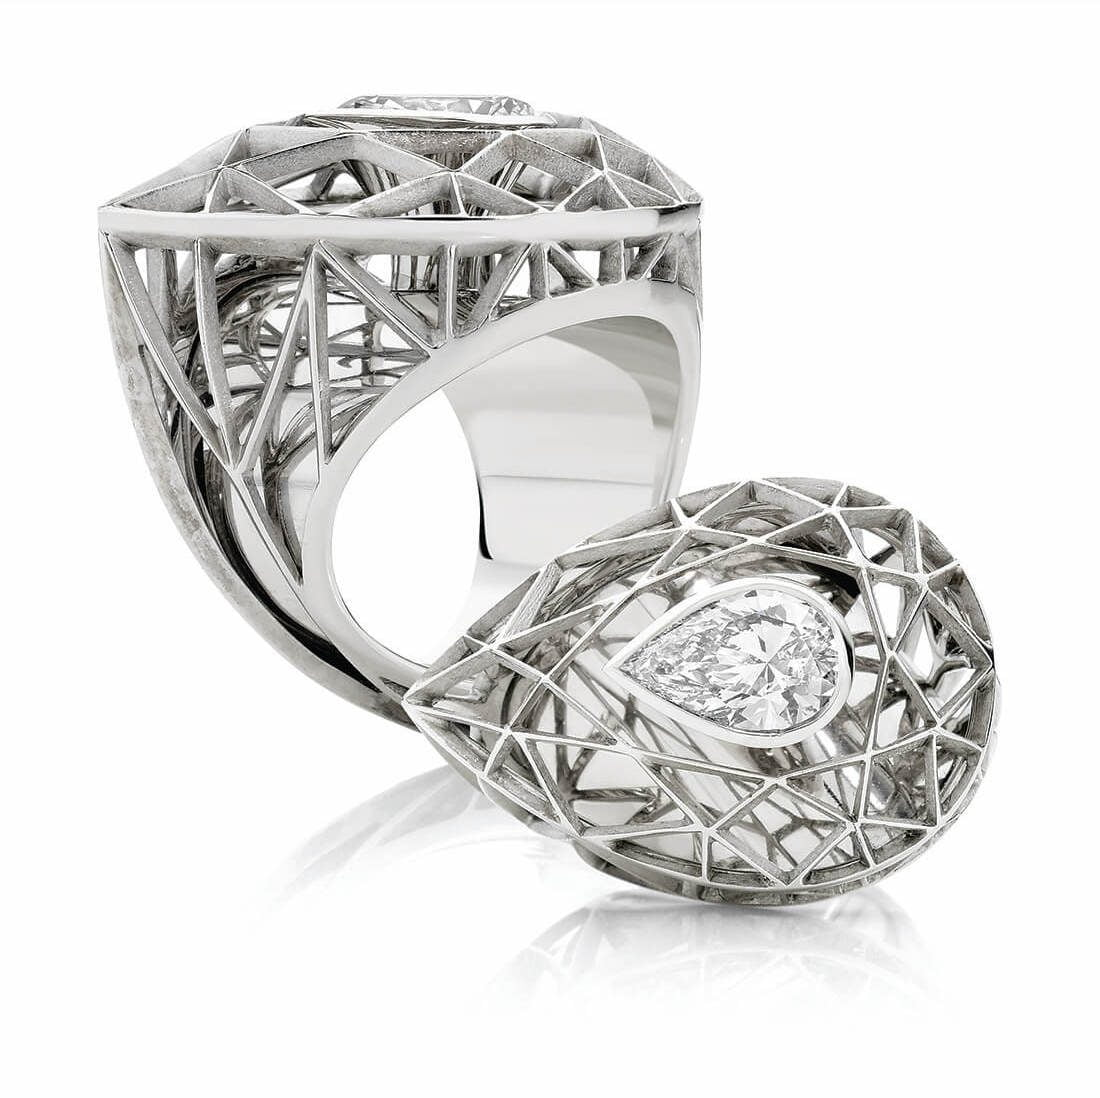 Odyssey Couture Diamond Ring